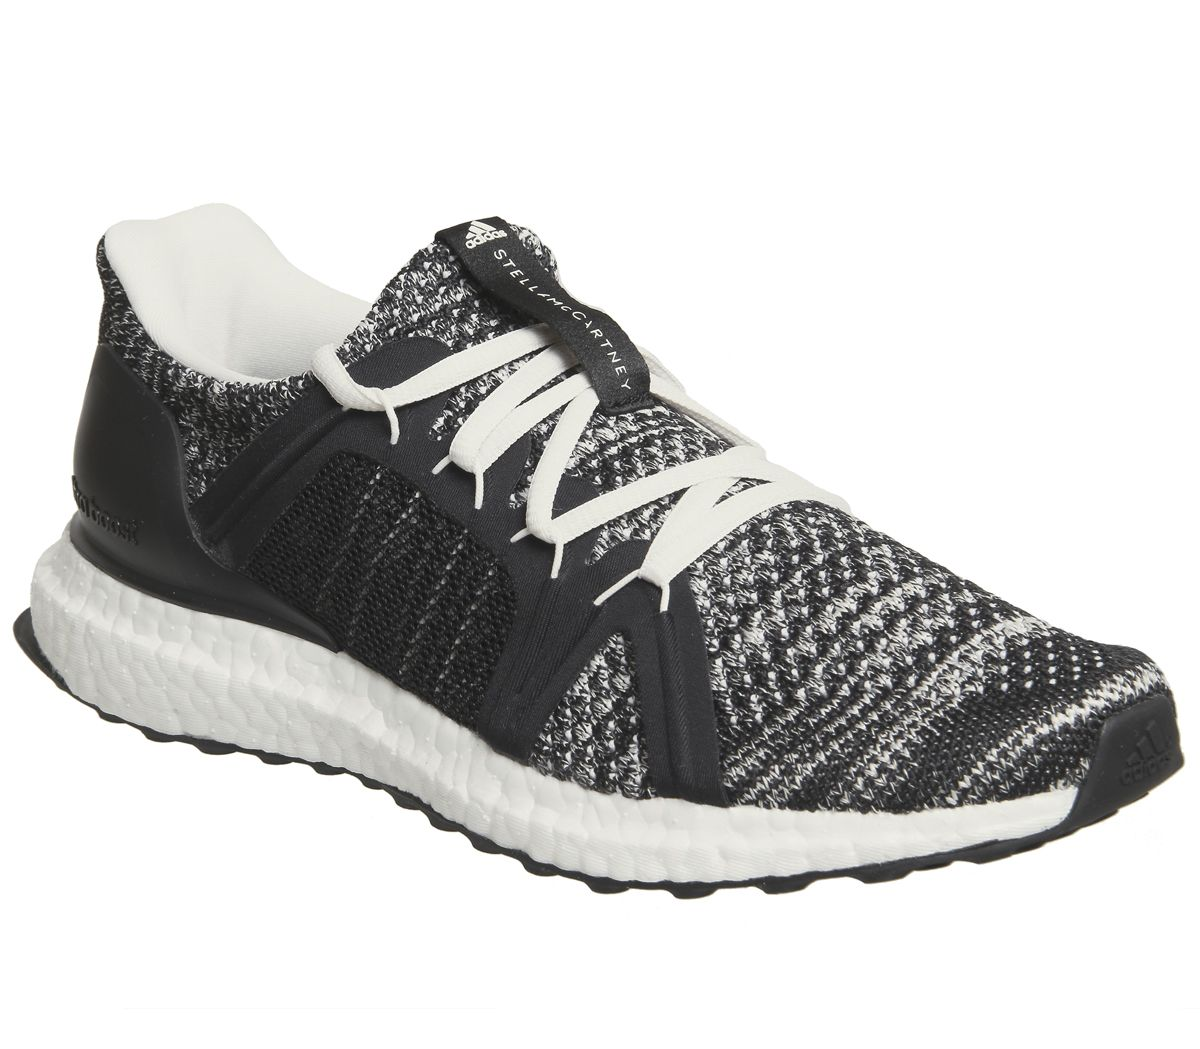 c06e63195b566 adidas Stella McCartney Stella Mccartney X Ultra Boost Black White ...